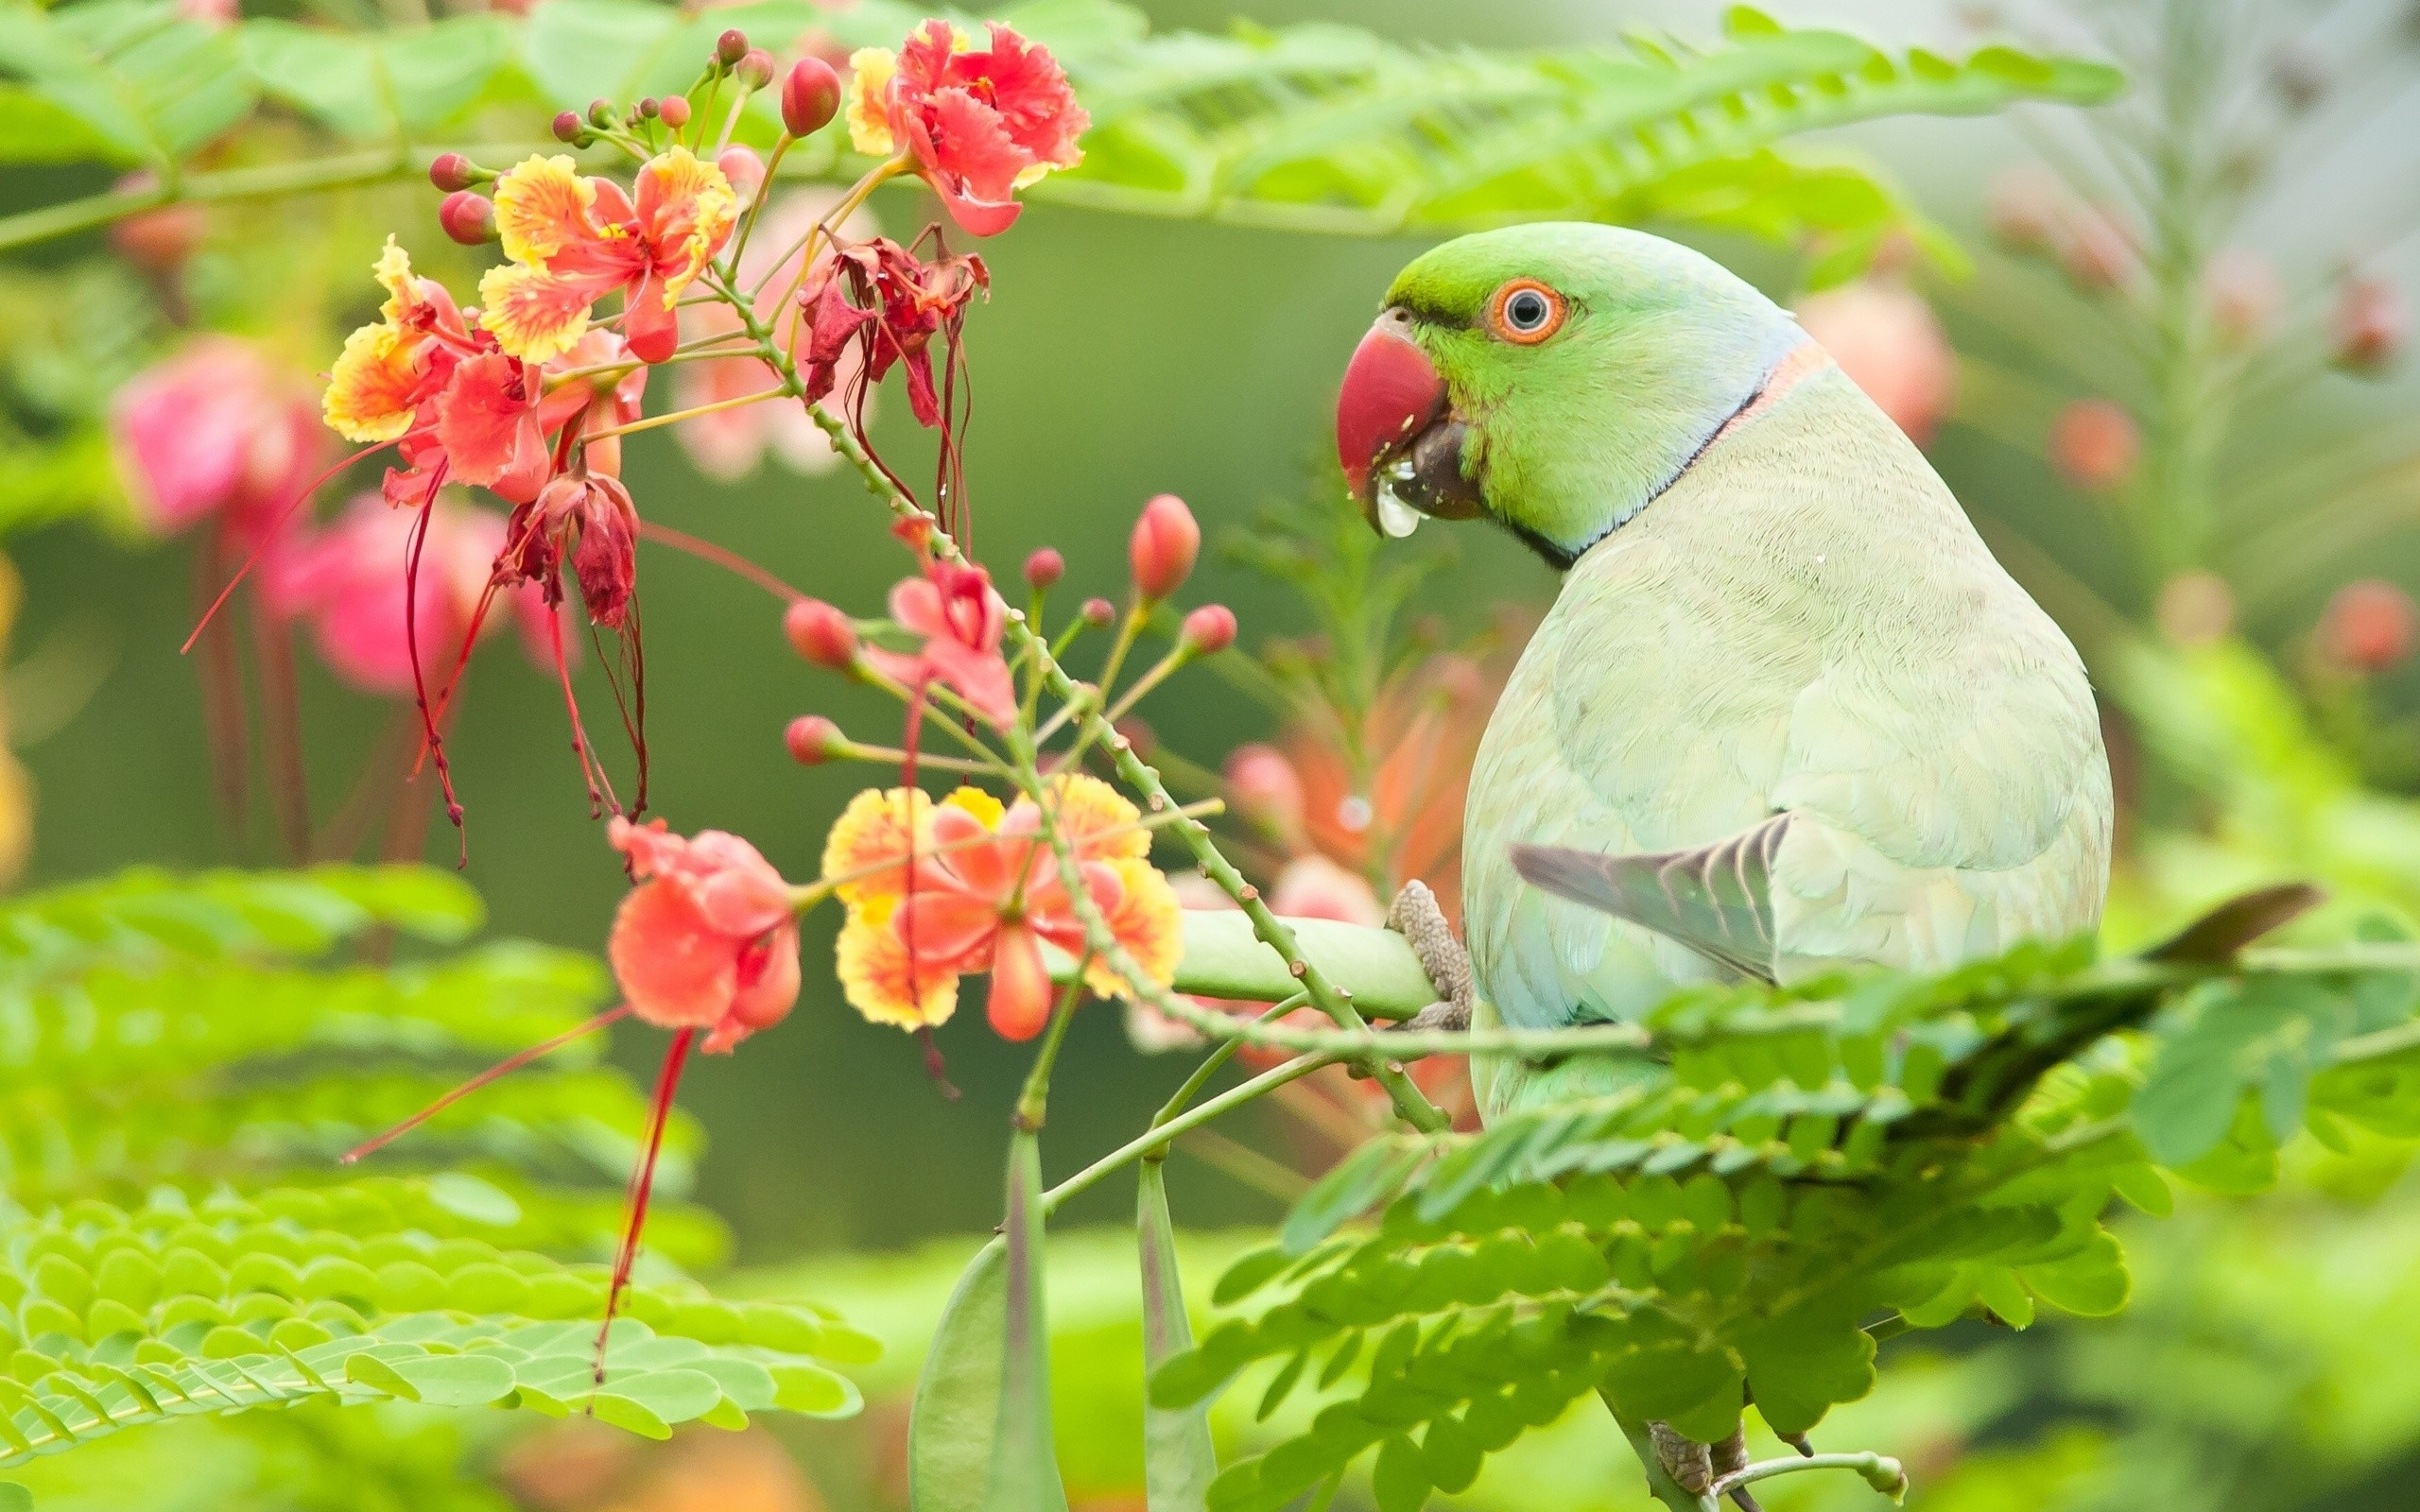 2560x1600 Green Parrot Bird With Flowers